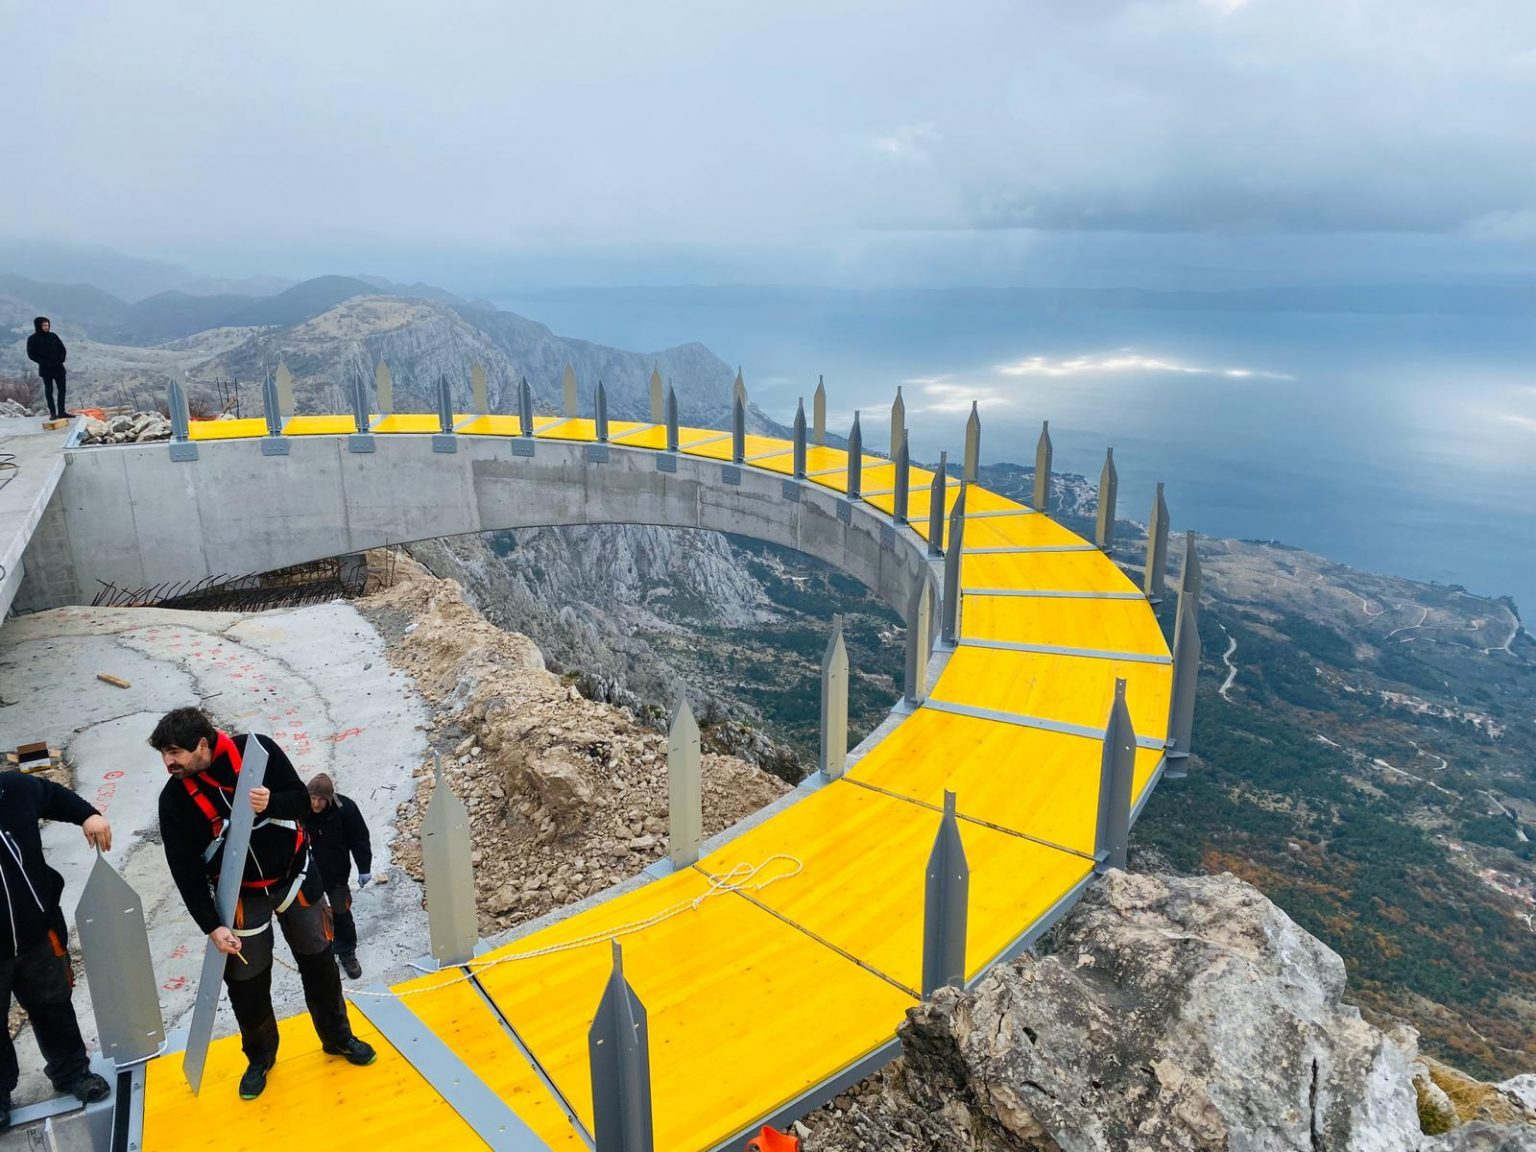 Video: first views of the finished sky walk on Biokovo mountain